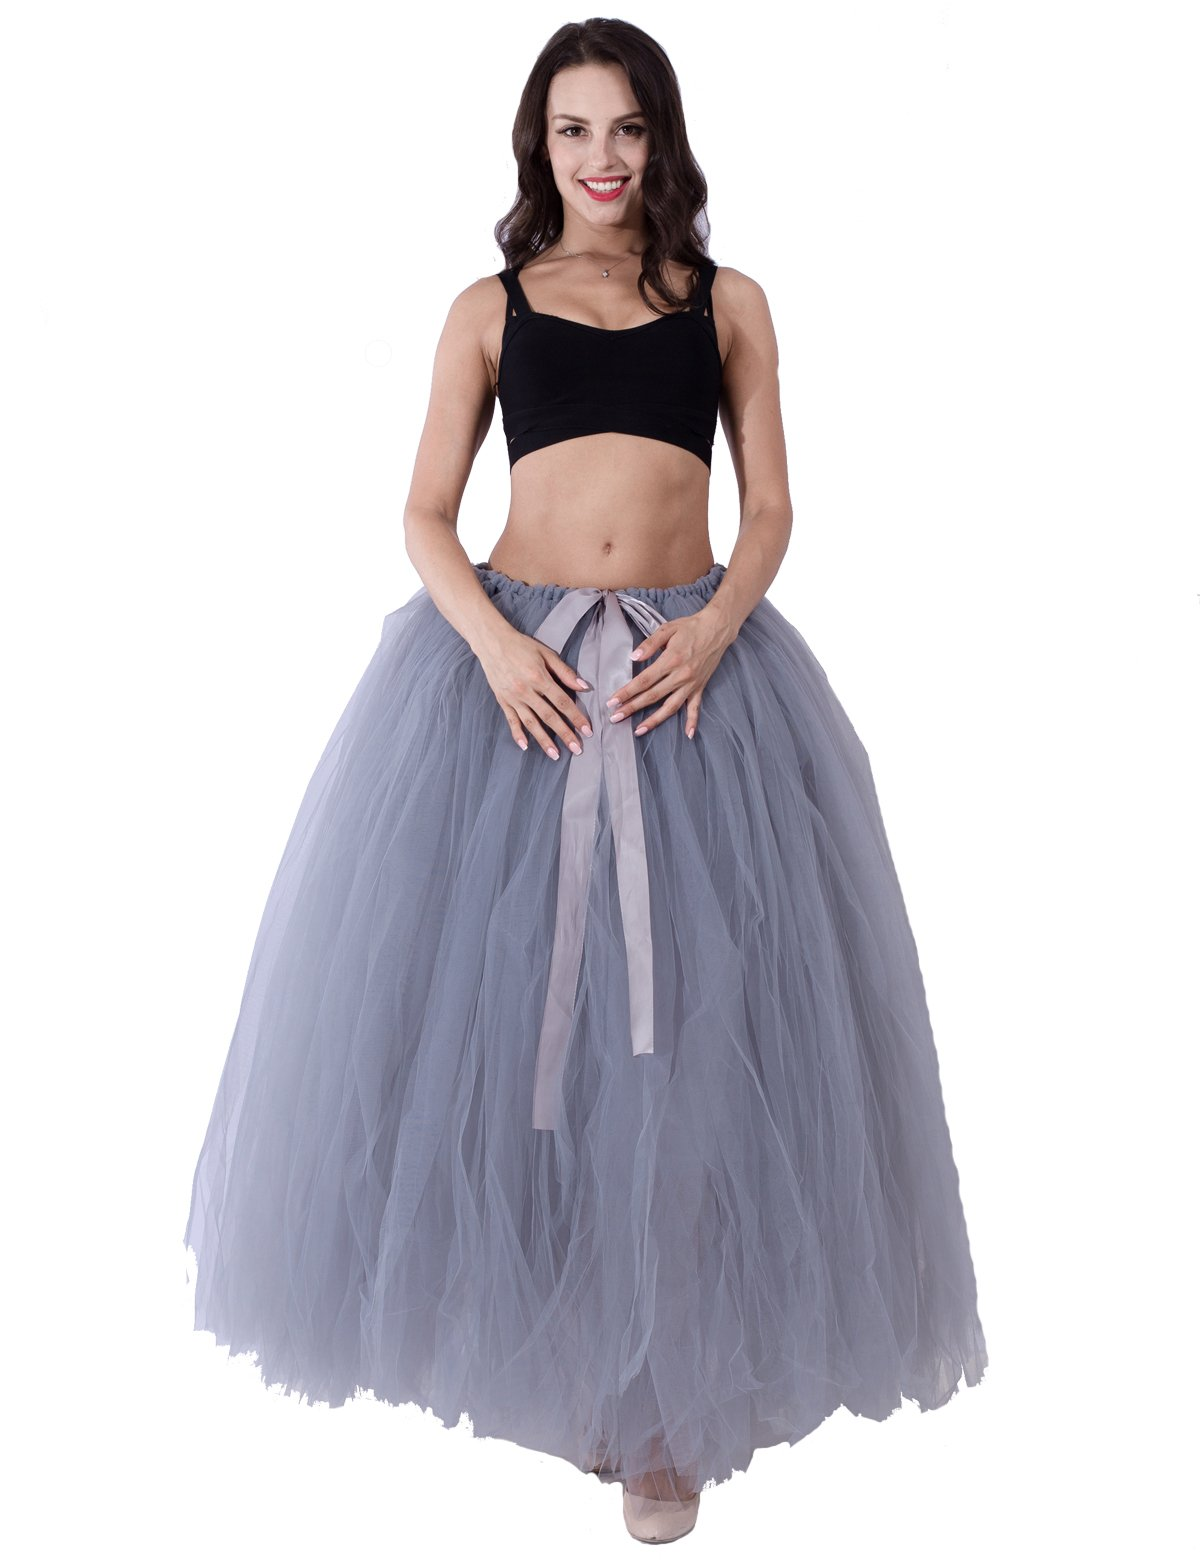 Party Train Adult Puffy Long Tutu Tulle Skirt 100cm Floor Length Women Wedding Skirts by Party Train (Image #4)